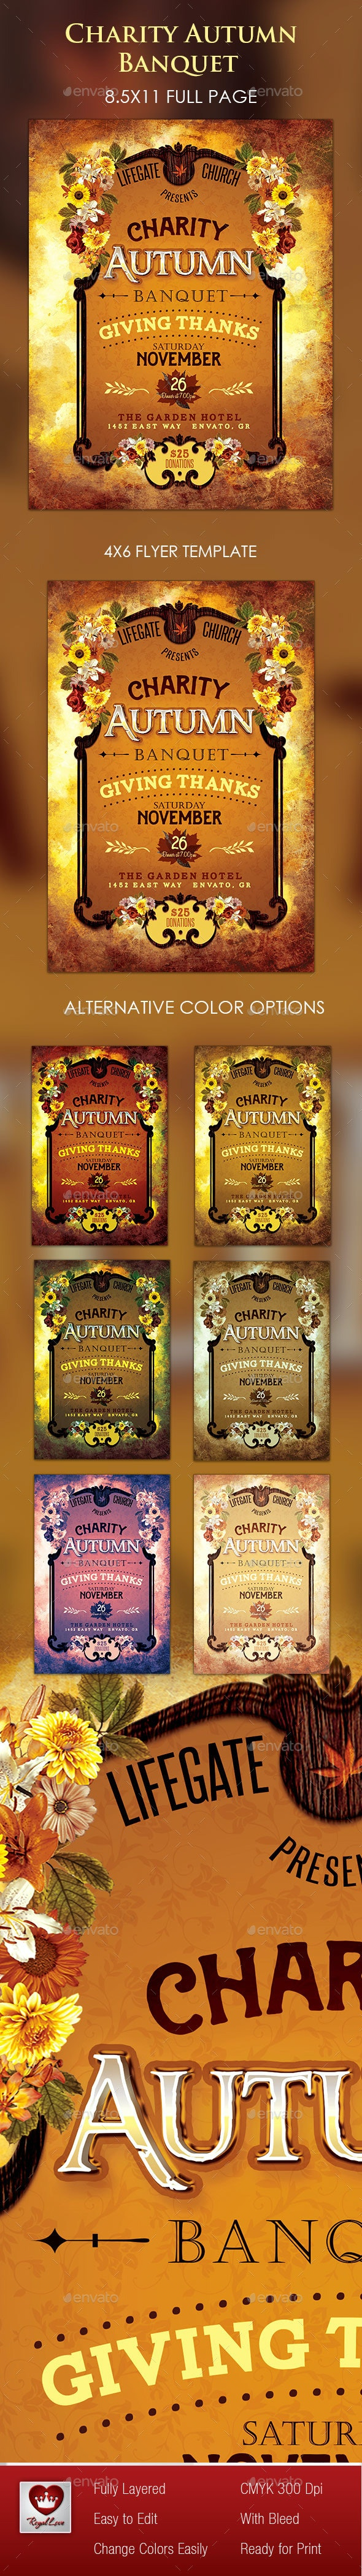 Charity Autumn Banquet Flyer - Holidays Events